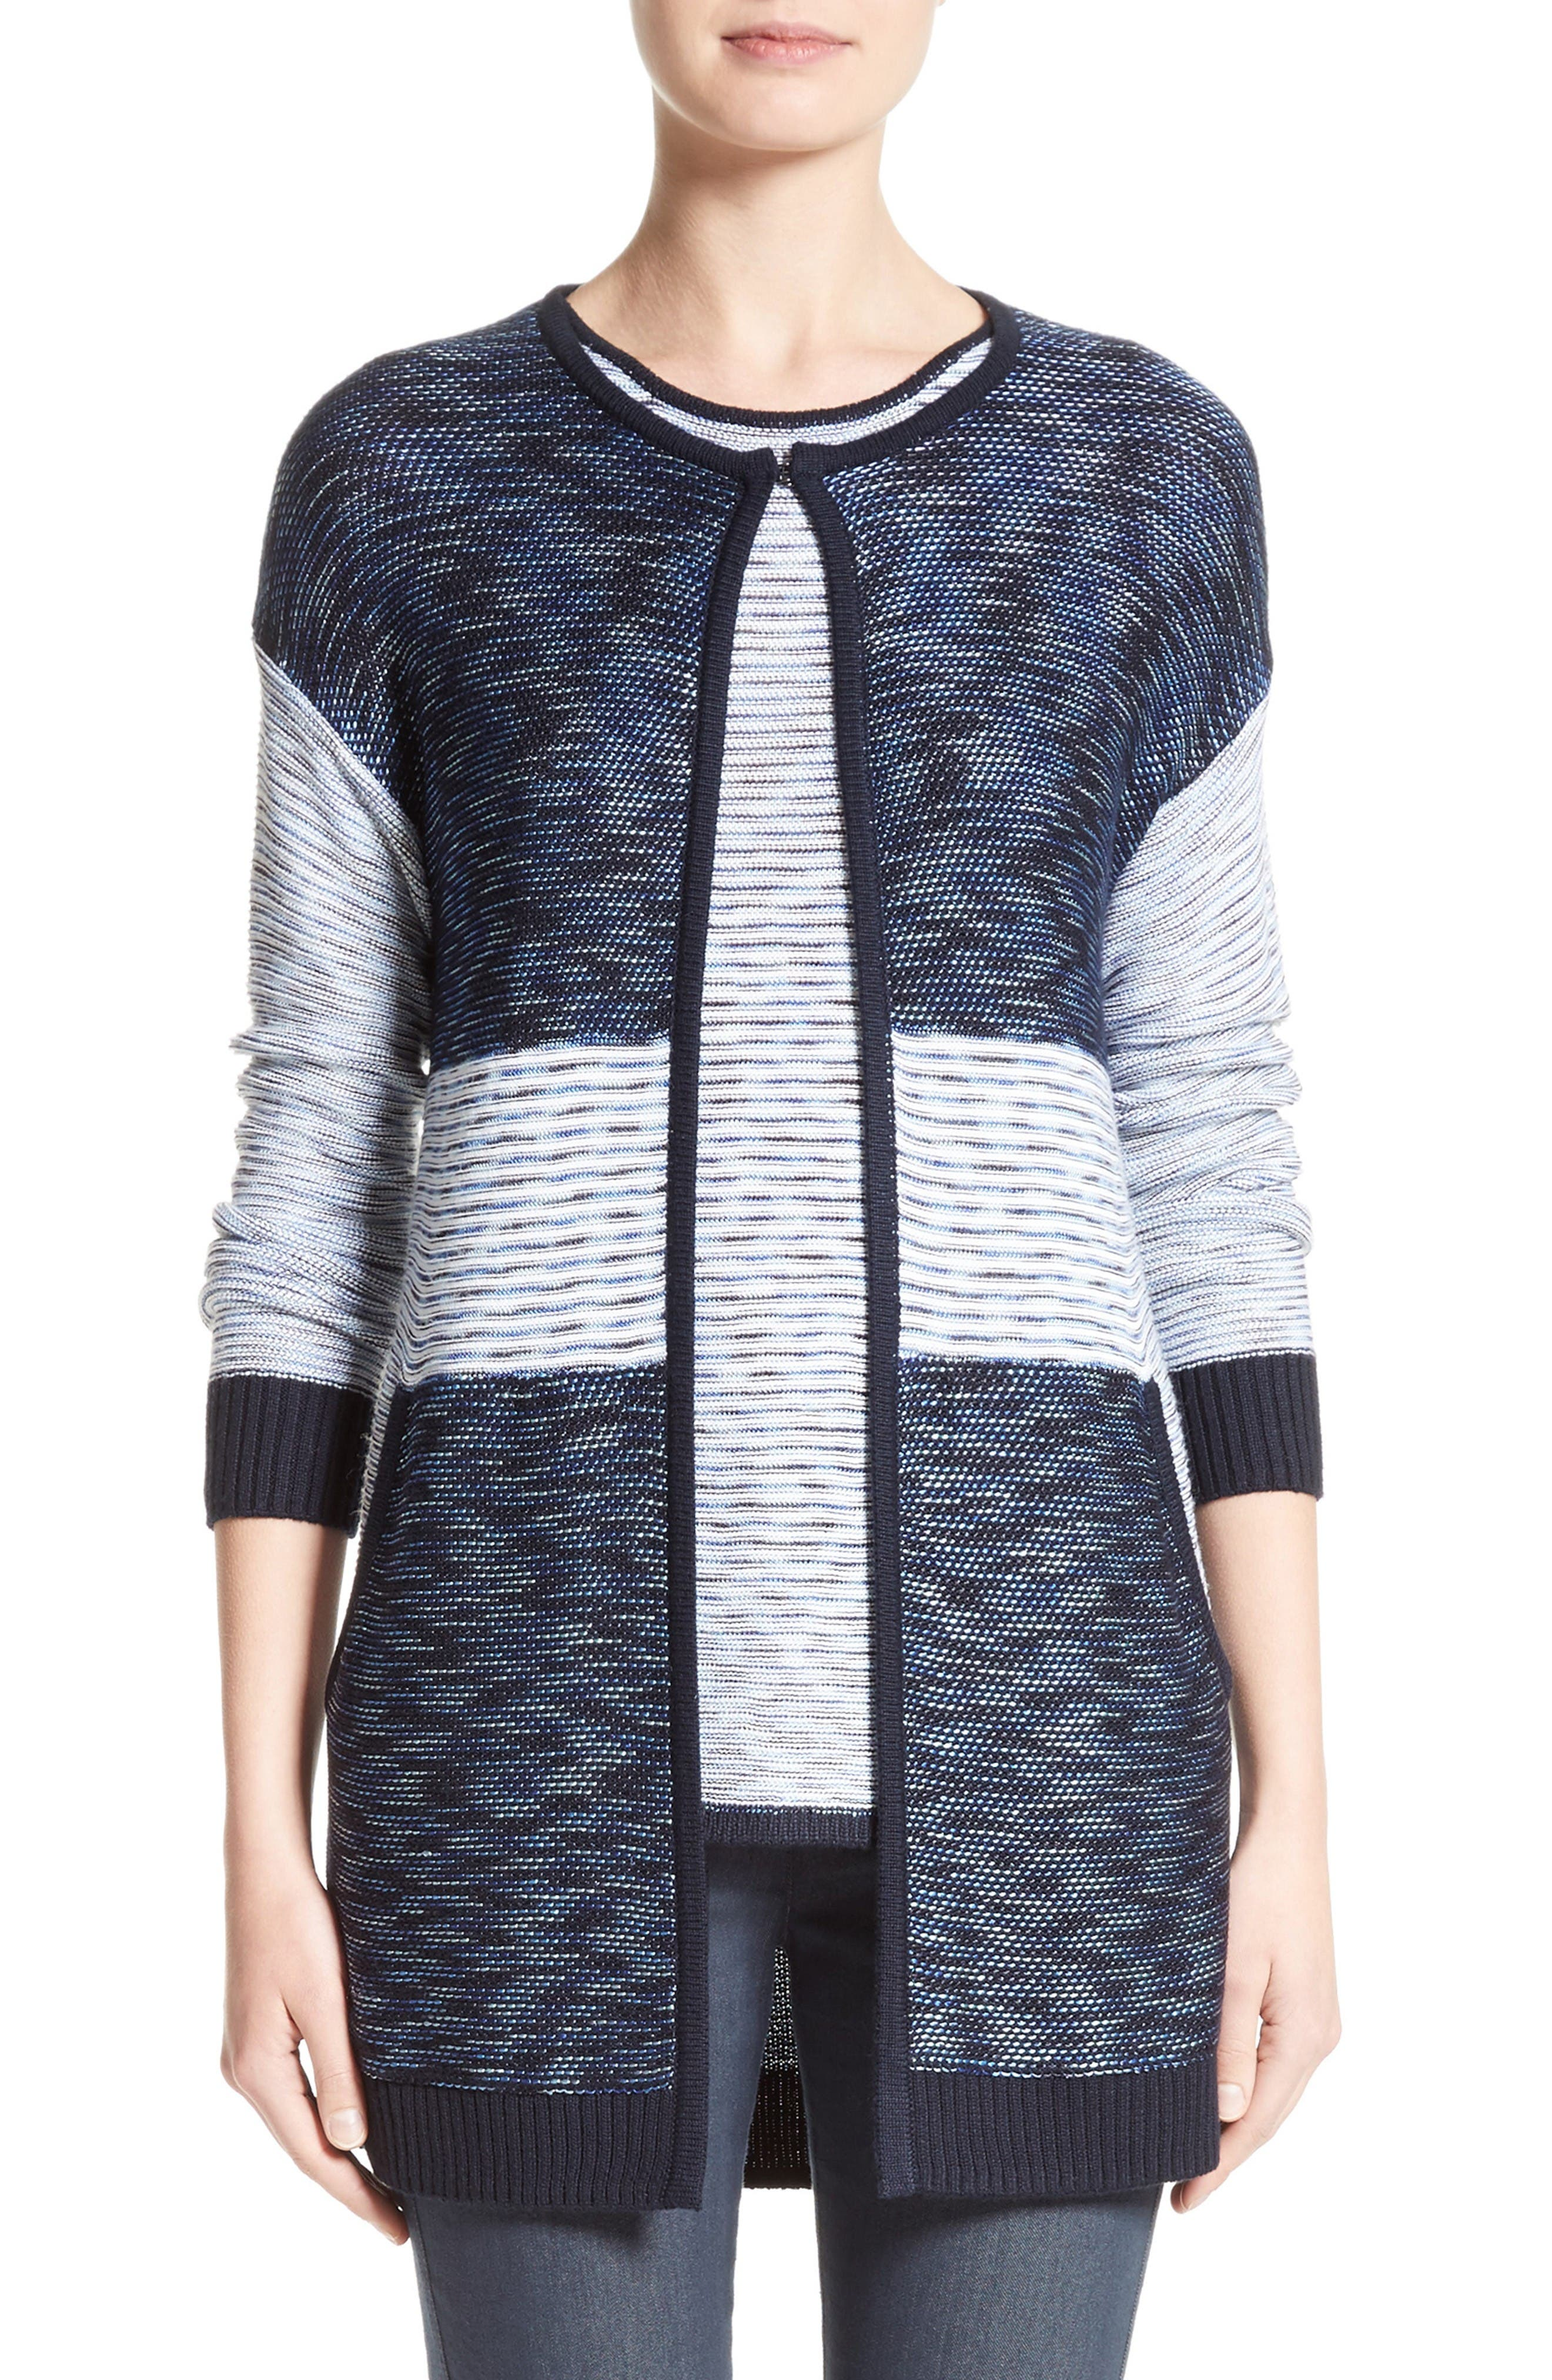 Main Image - St. John Collection Chambray Effect Links Knit Cardigan